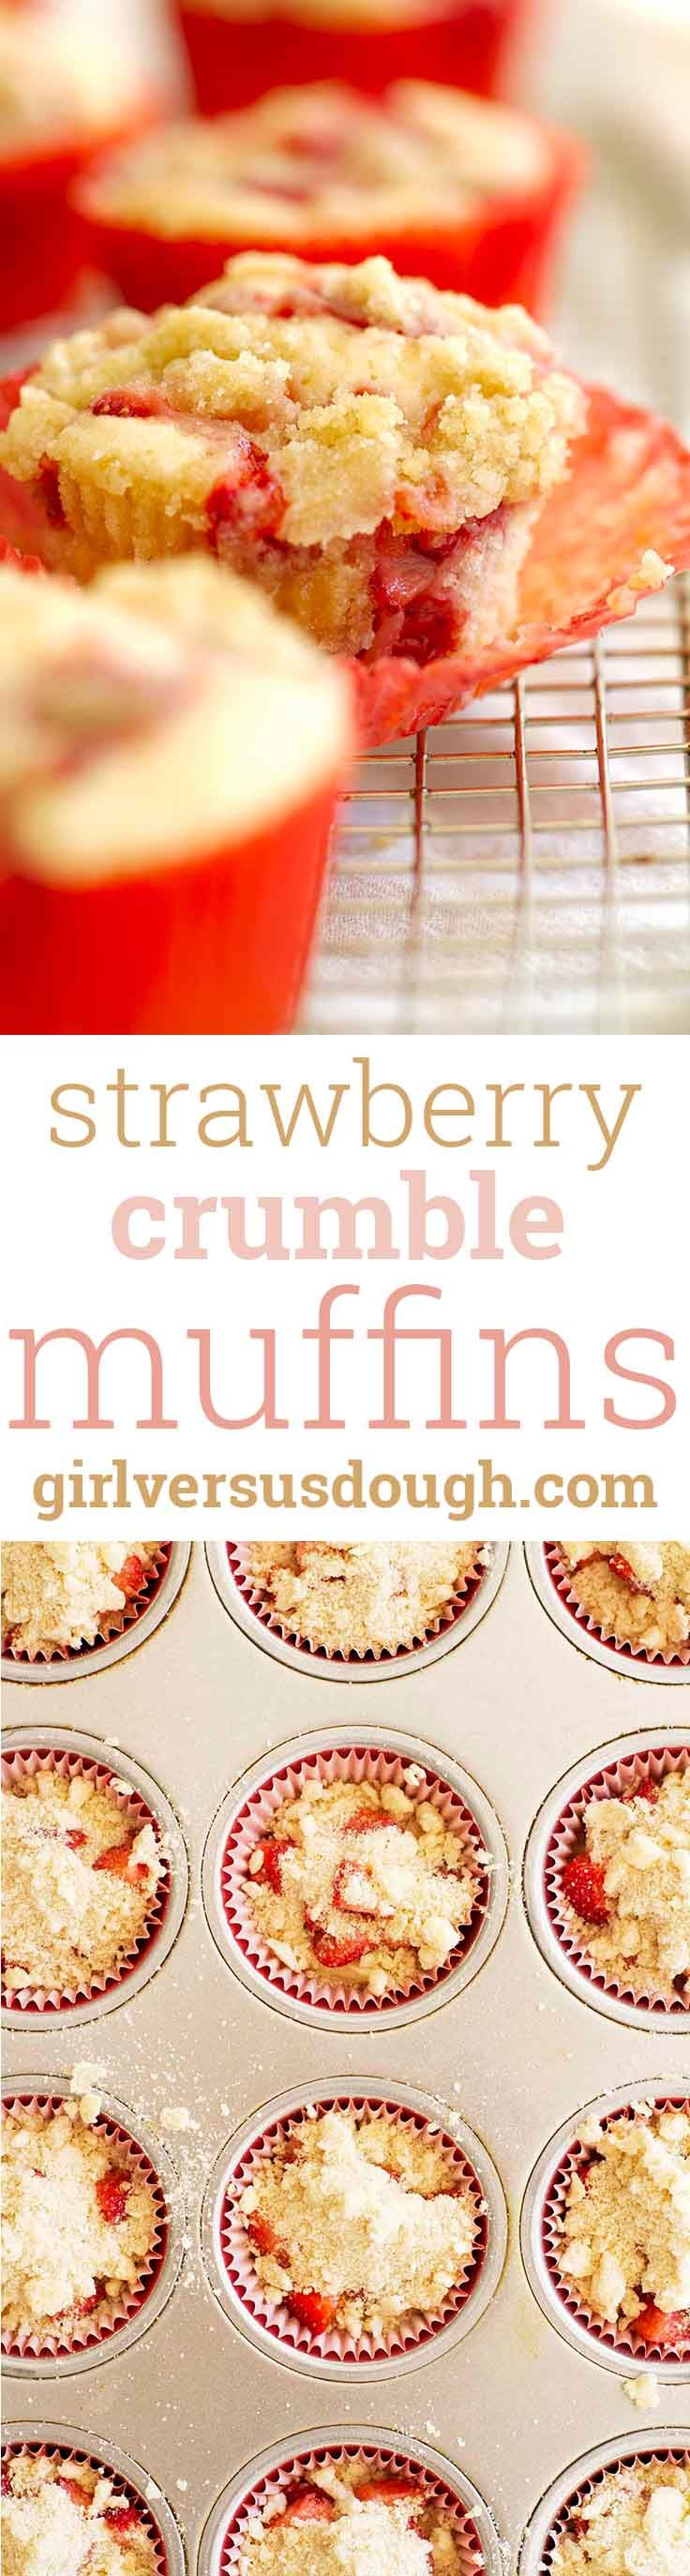 Strawberry Crumble Muffins -- Deliciously tender, sweet and simple muffins studded with fresh strawberries and topped with a buttery crumble. It's summer in a muffin tin. girlversusdough.com @girlversusdough